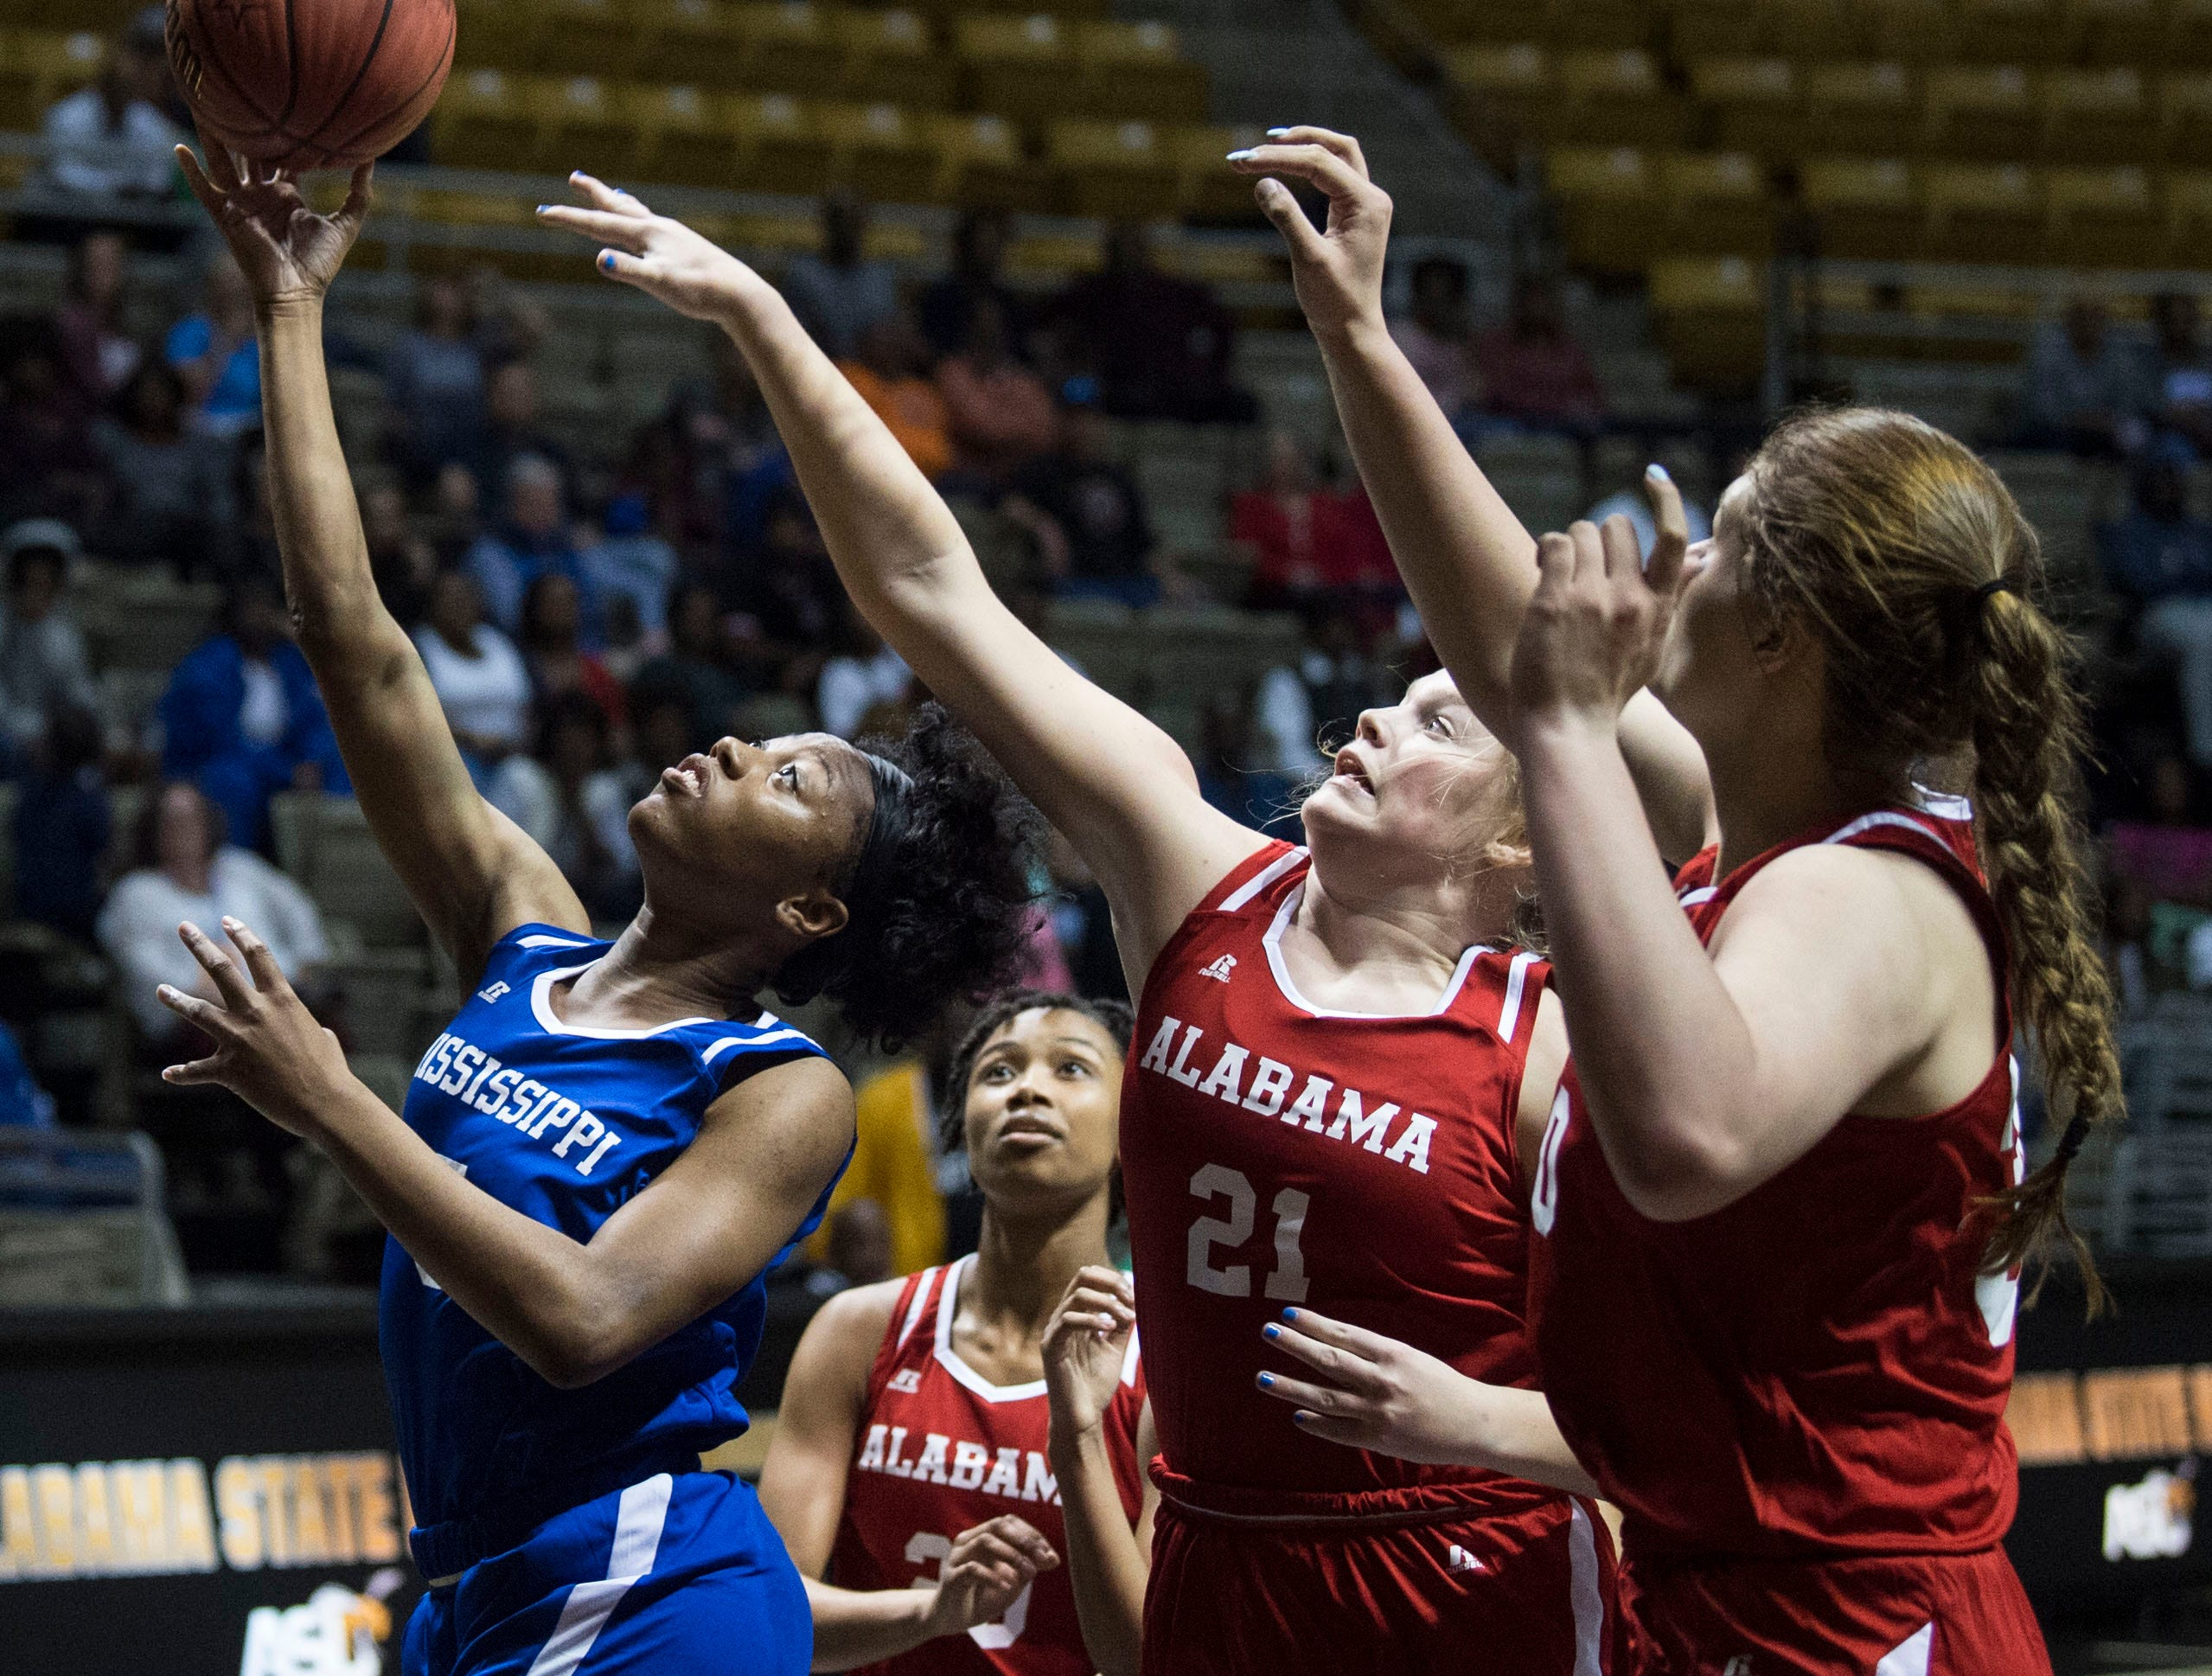 Mississippi's Ebony Gayden (5) goes up for a layup during the Alabama-Mississippi All-Star game at the Dunn-Oliver Acadome in Montgomery, Ala., on Friday, March 15, 2019. Alabama All-stars lead the Mississippi All-stars 48-34 at halftime.